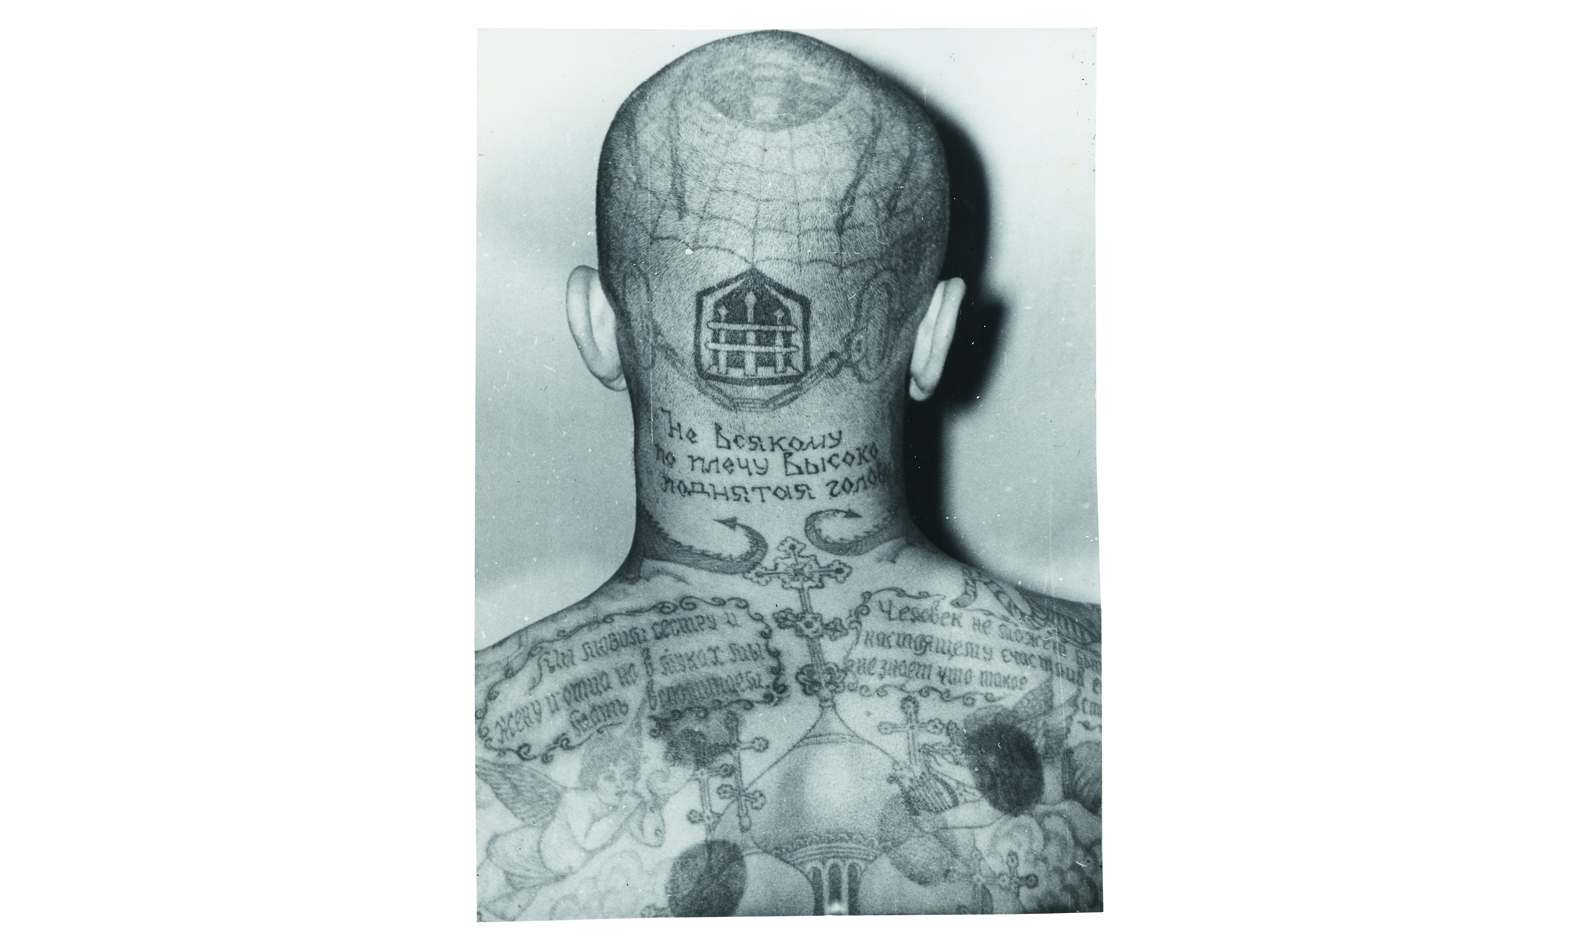 1539107372994-Russian-Criminal-Tattoos-and-Playing-Cards-p223